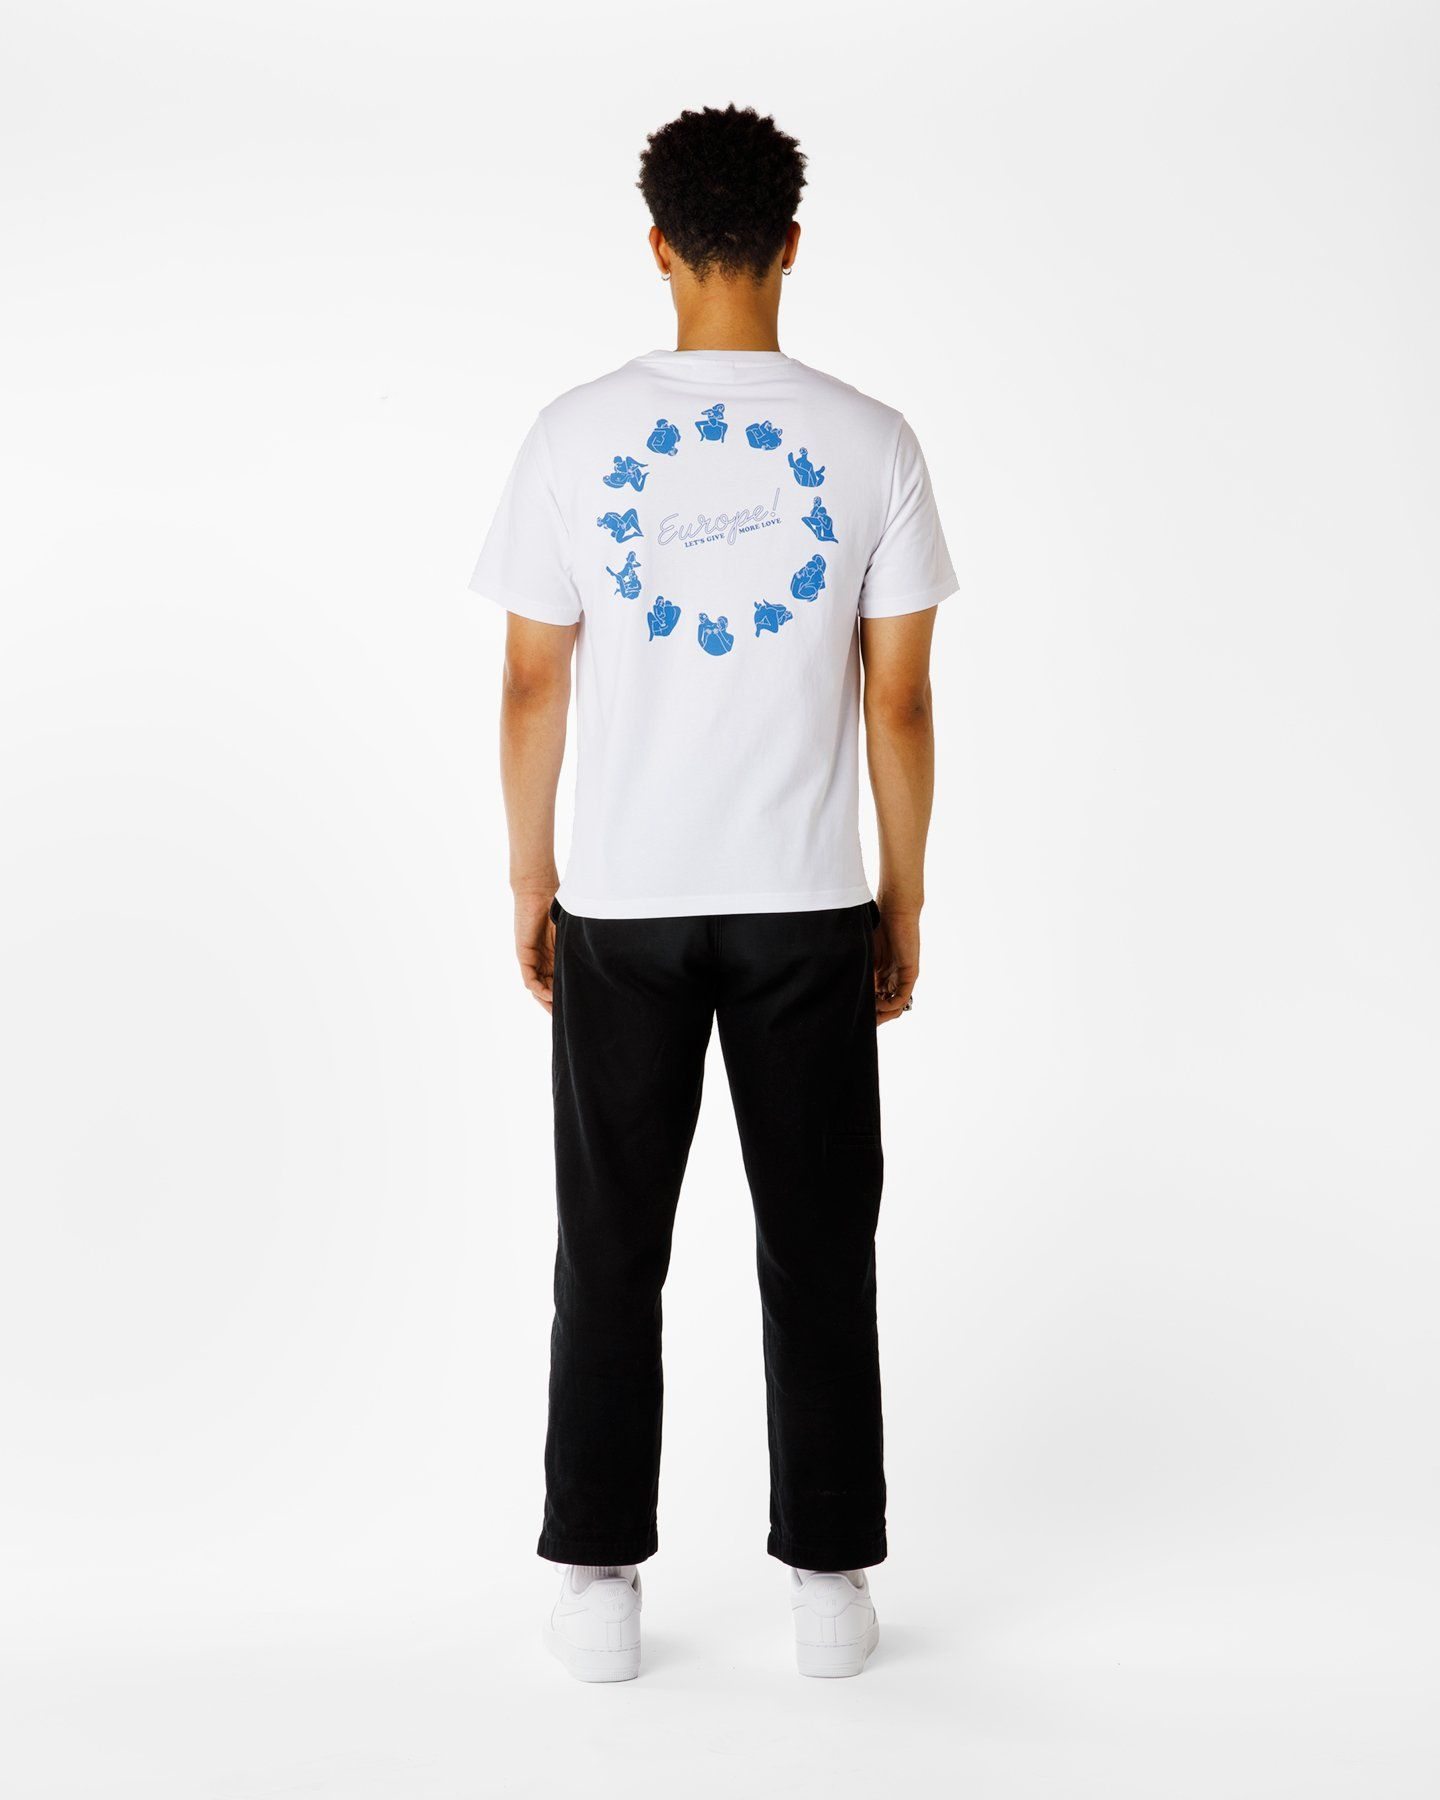 Carne Bollente Let's Give More Love T-Shirt - Image 6